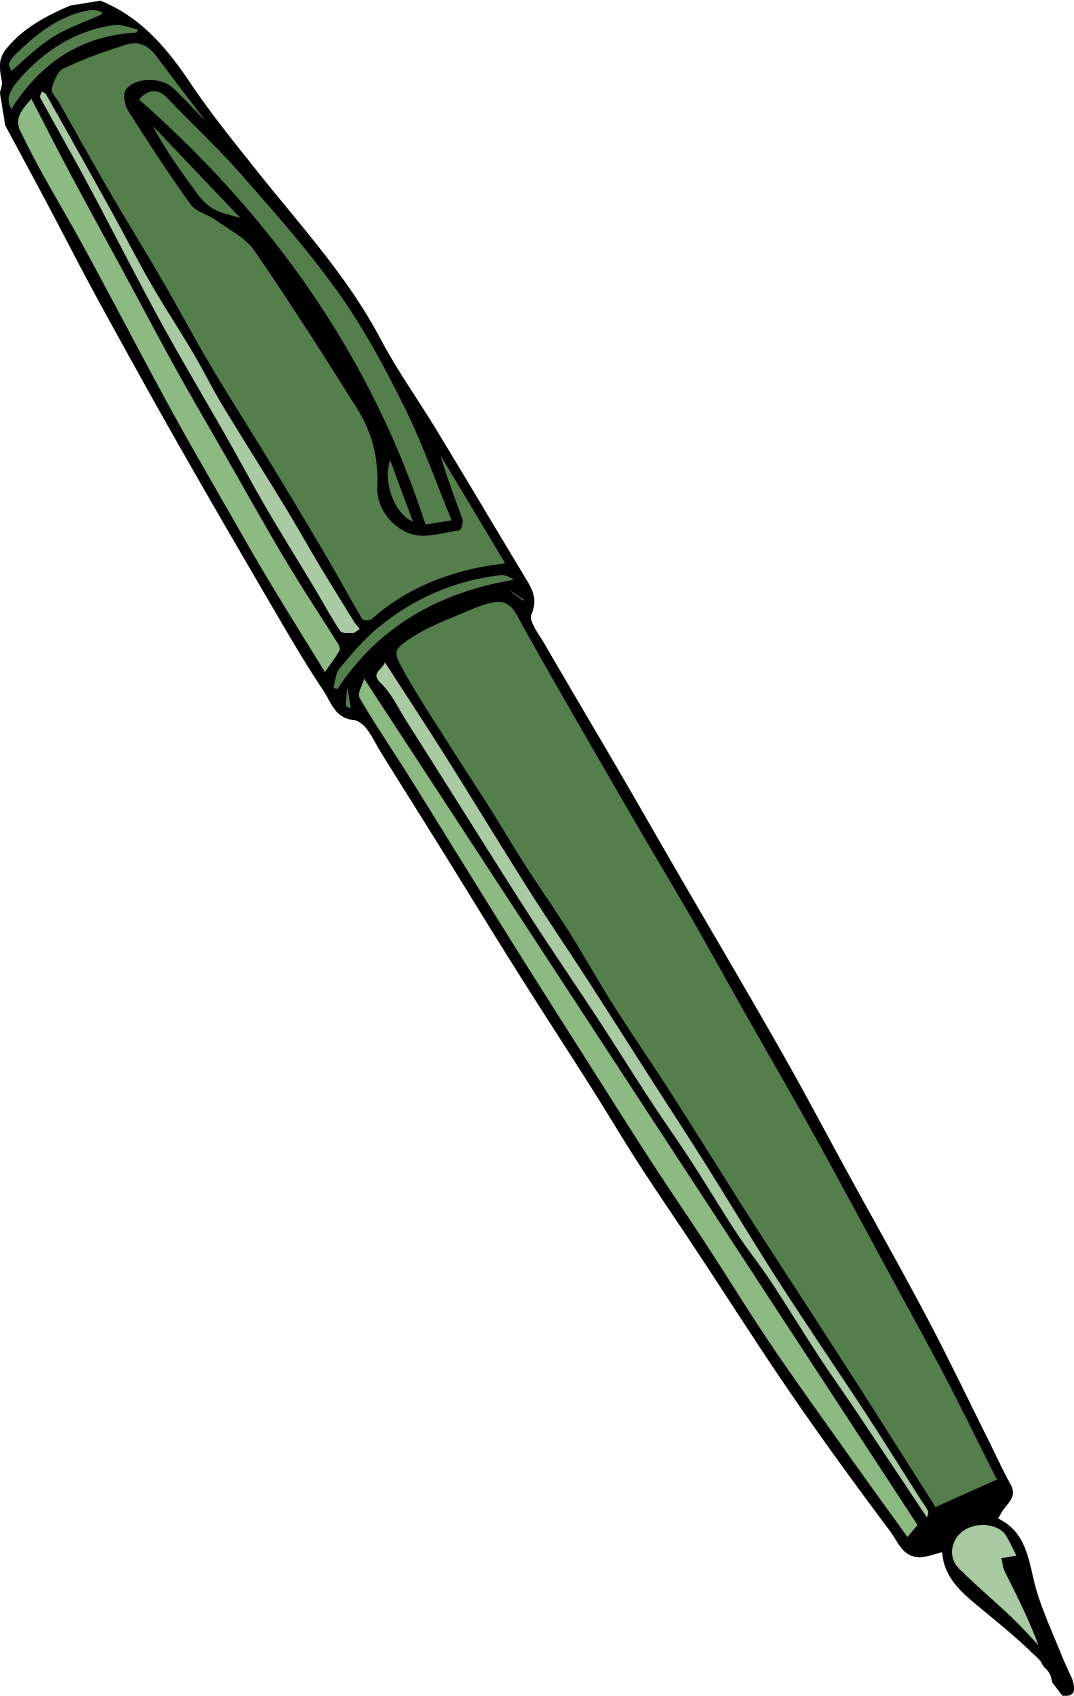 Calligraphy Pen Clipart Png.